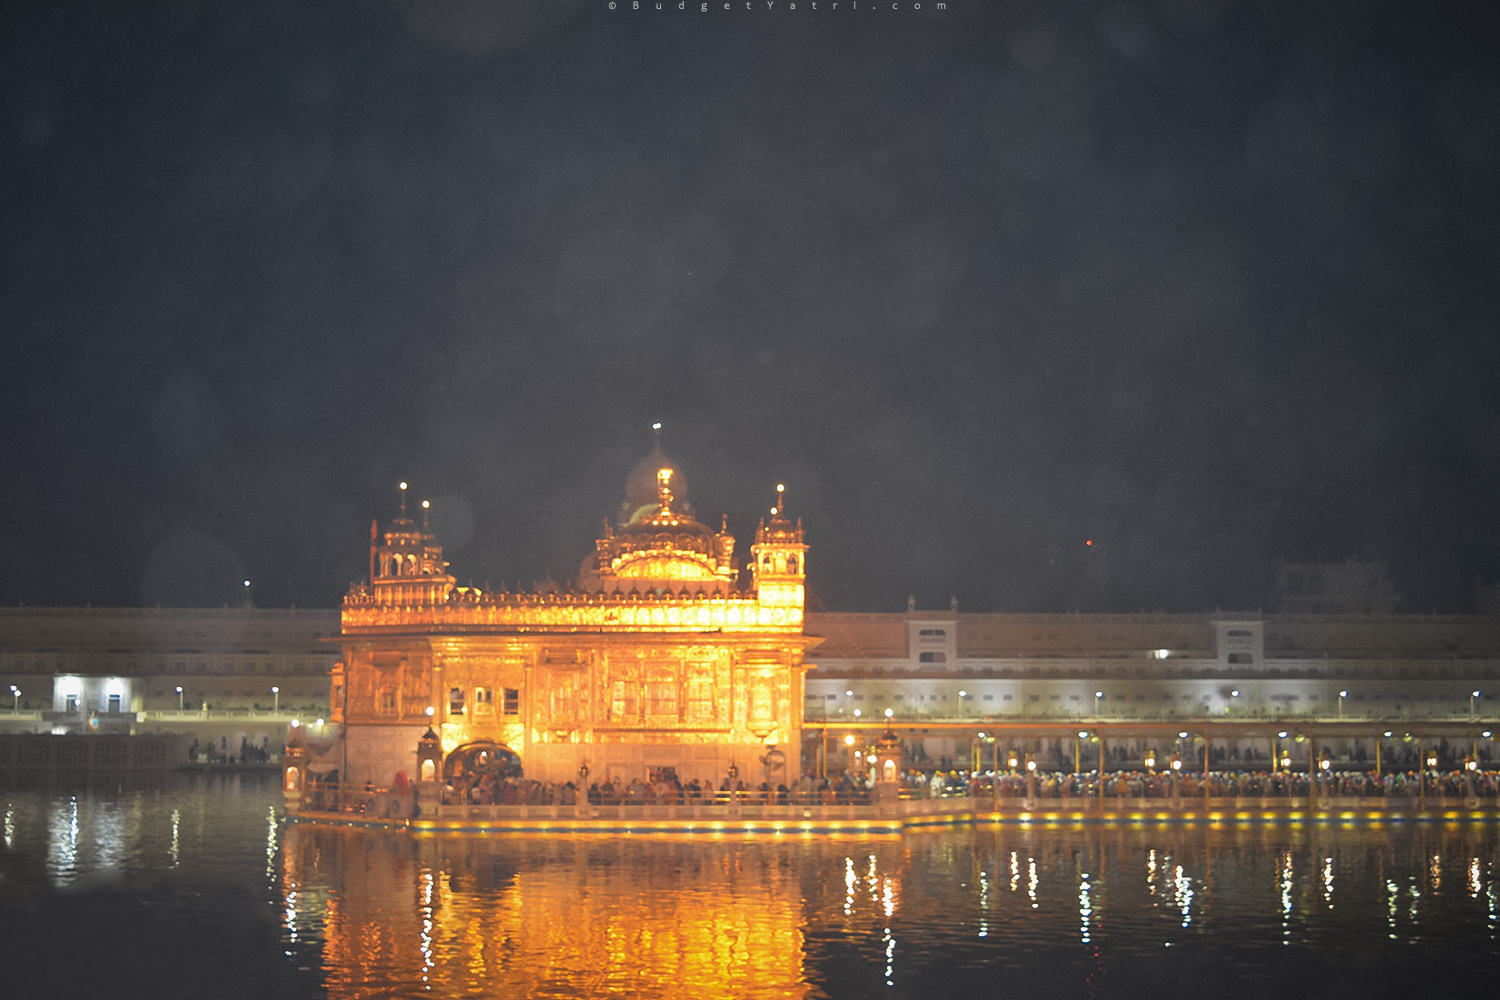 Golden temple, harmandir sahib, Amritsar